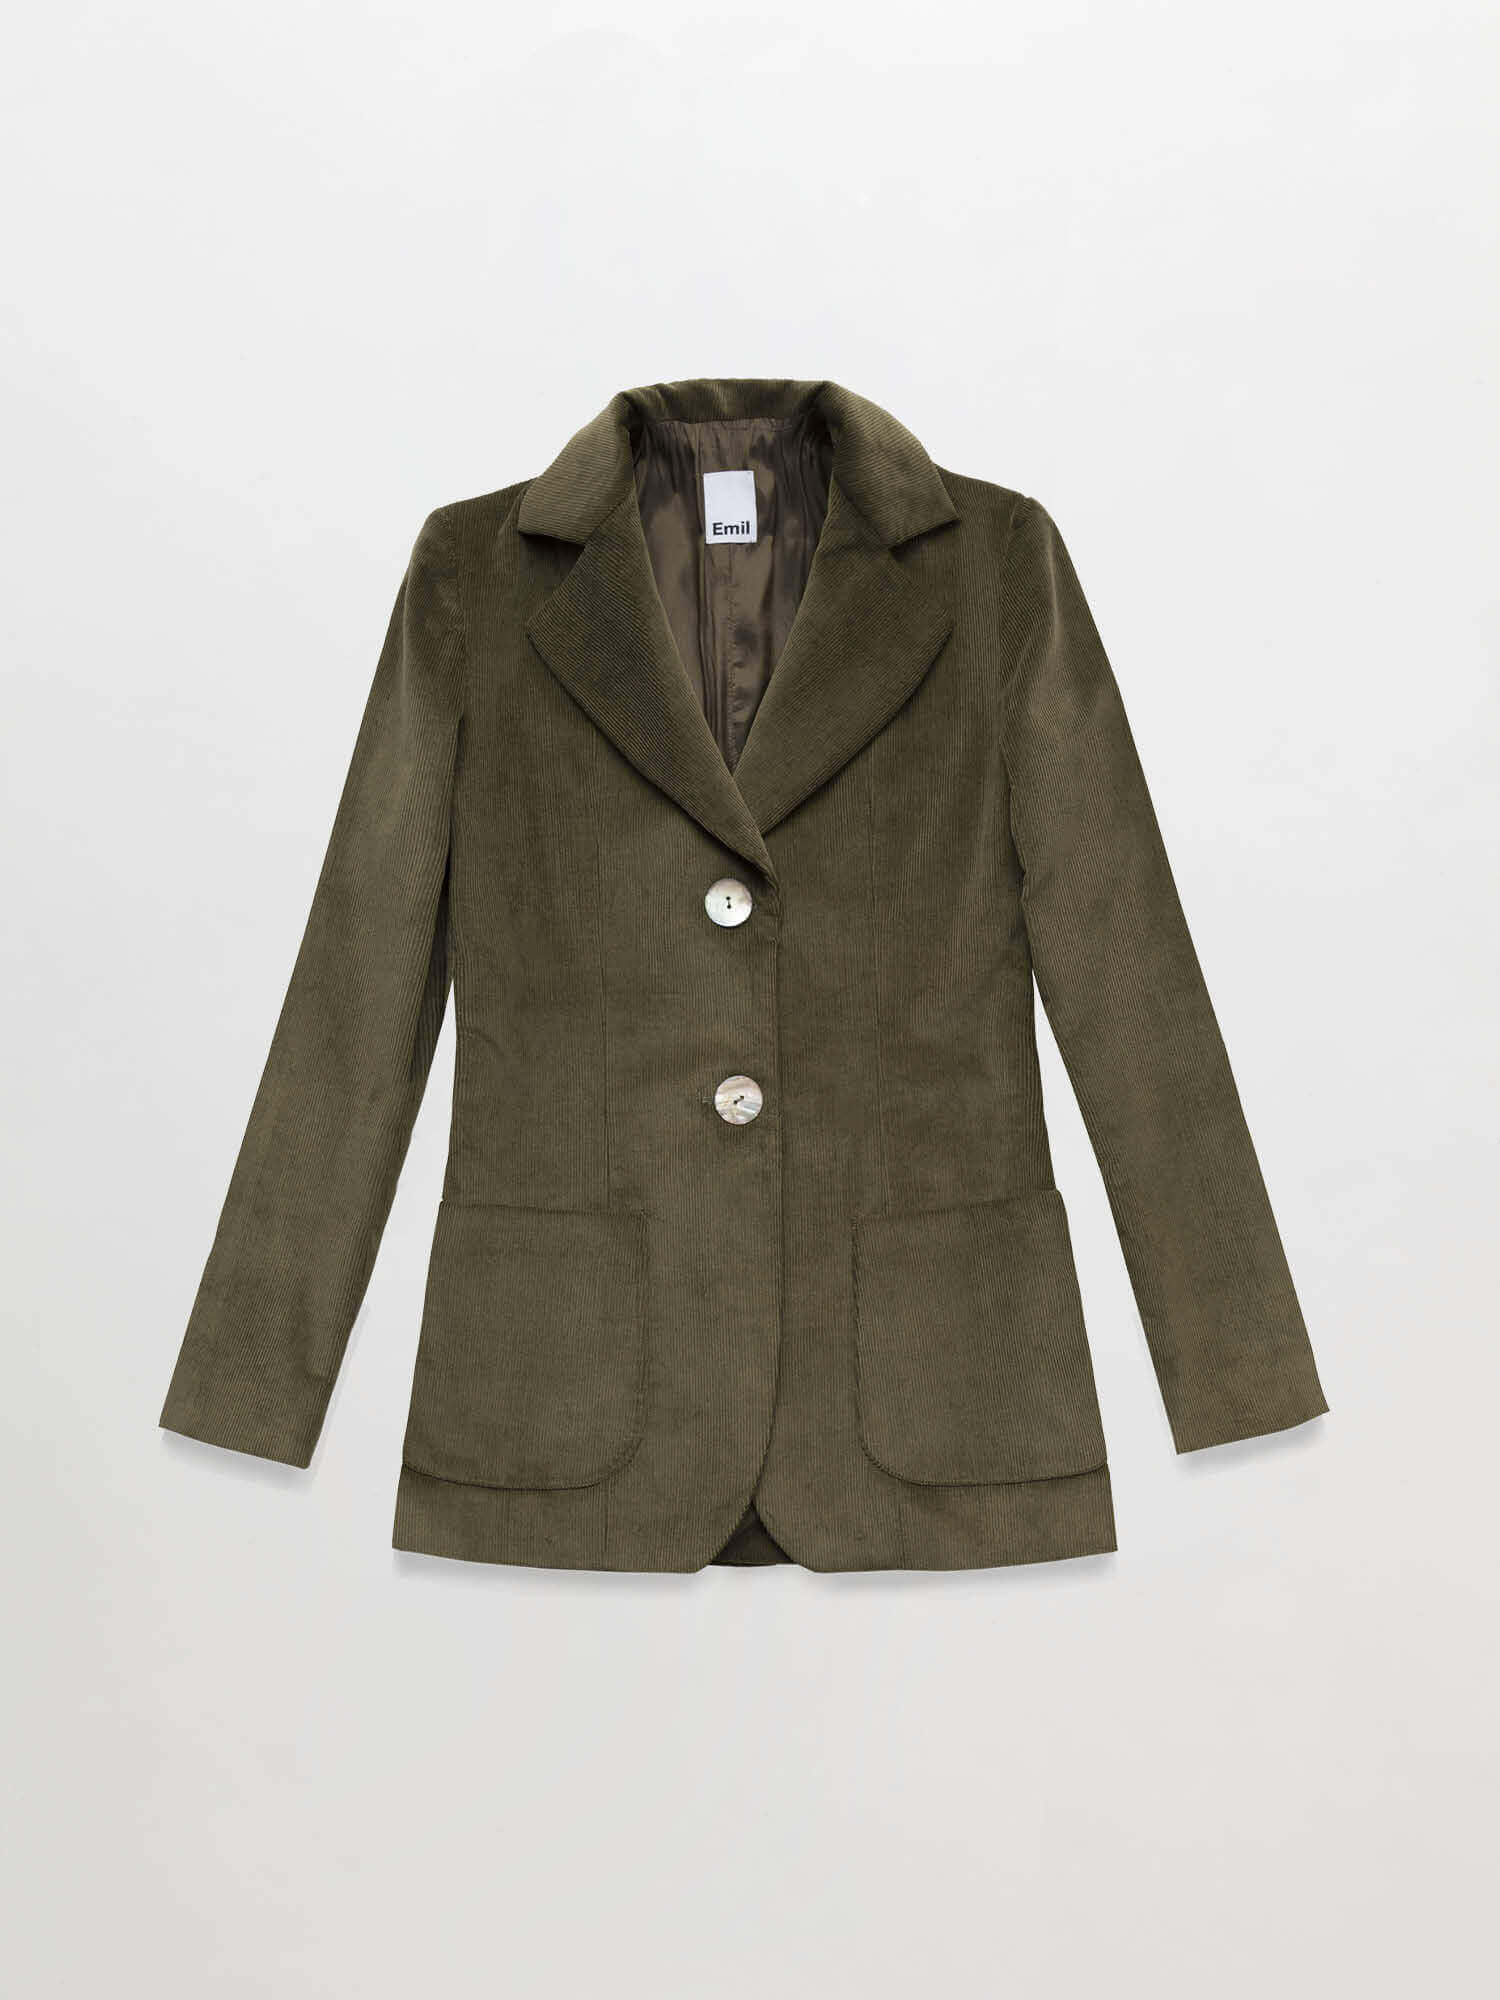 Lewis jacket, green